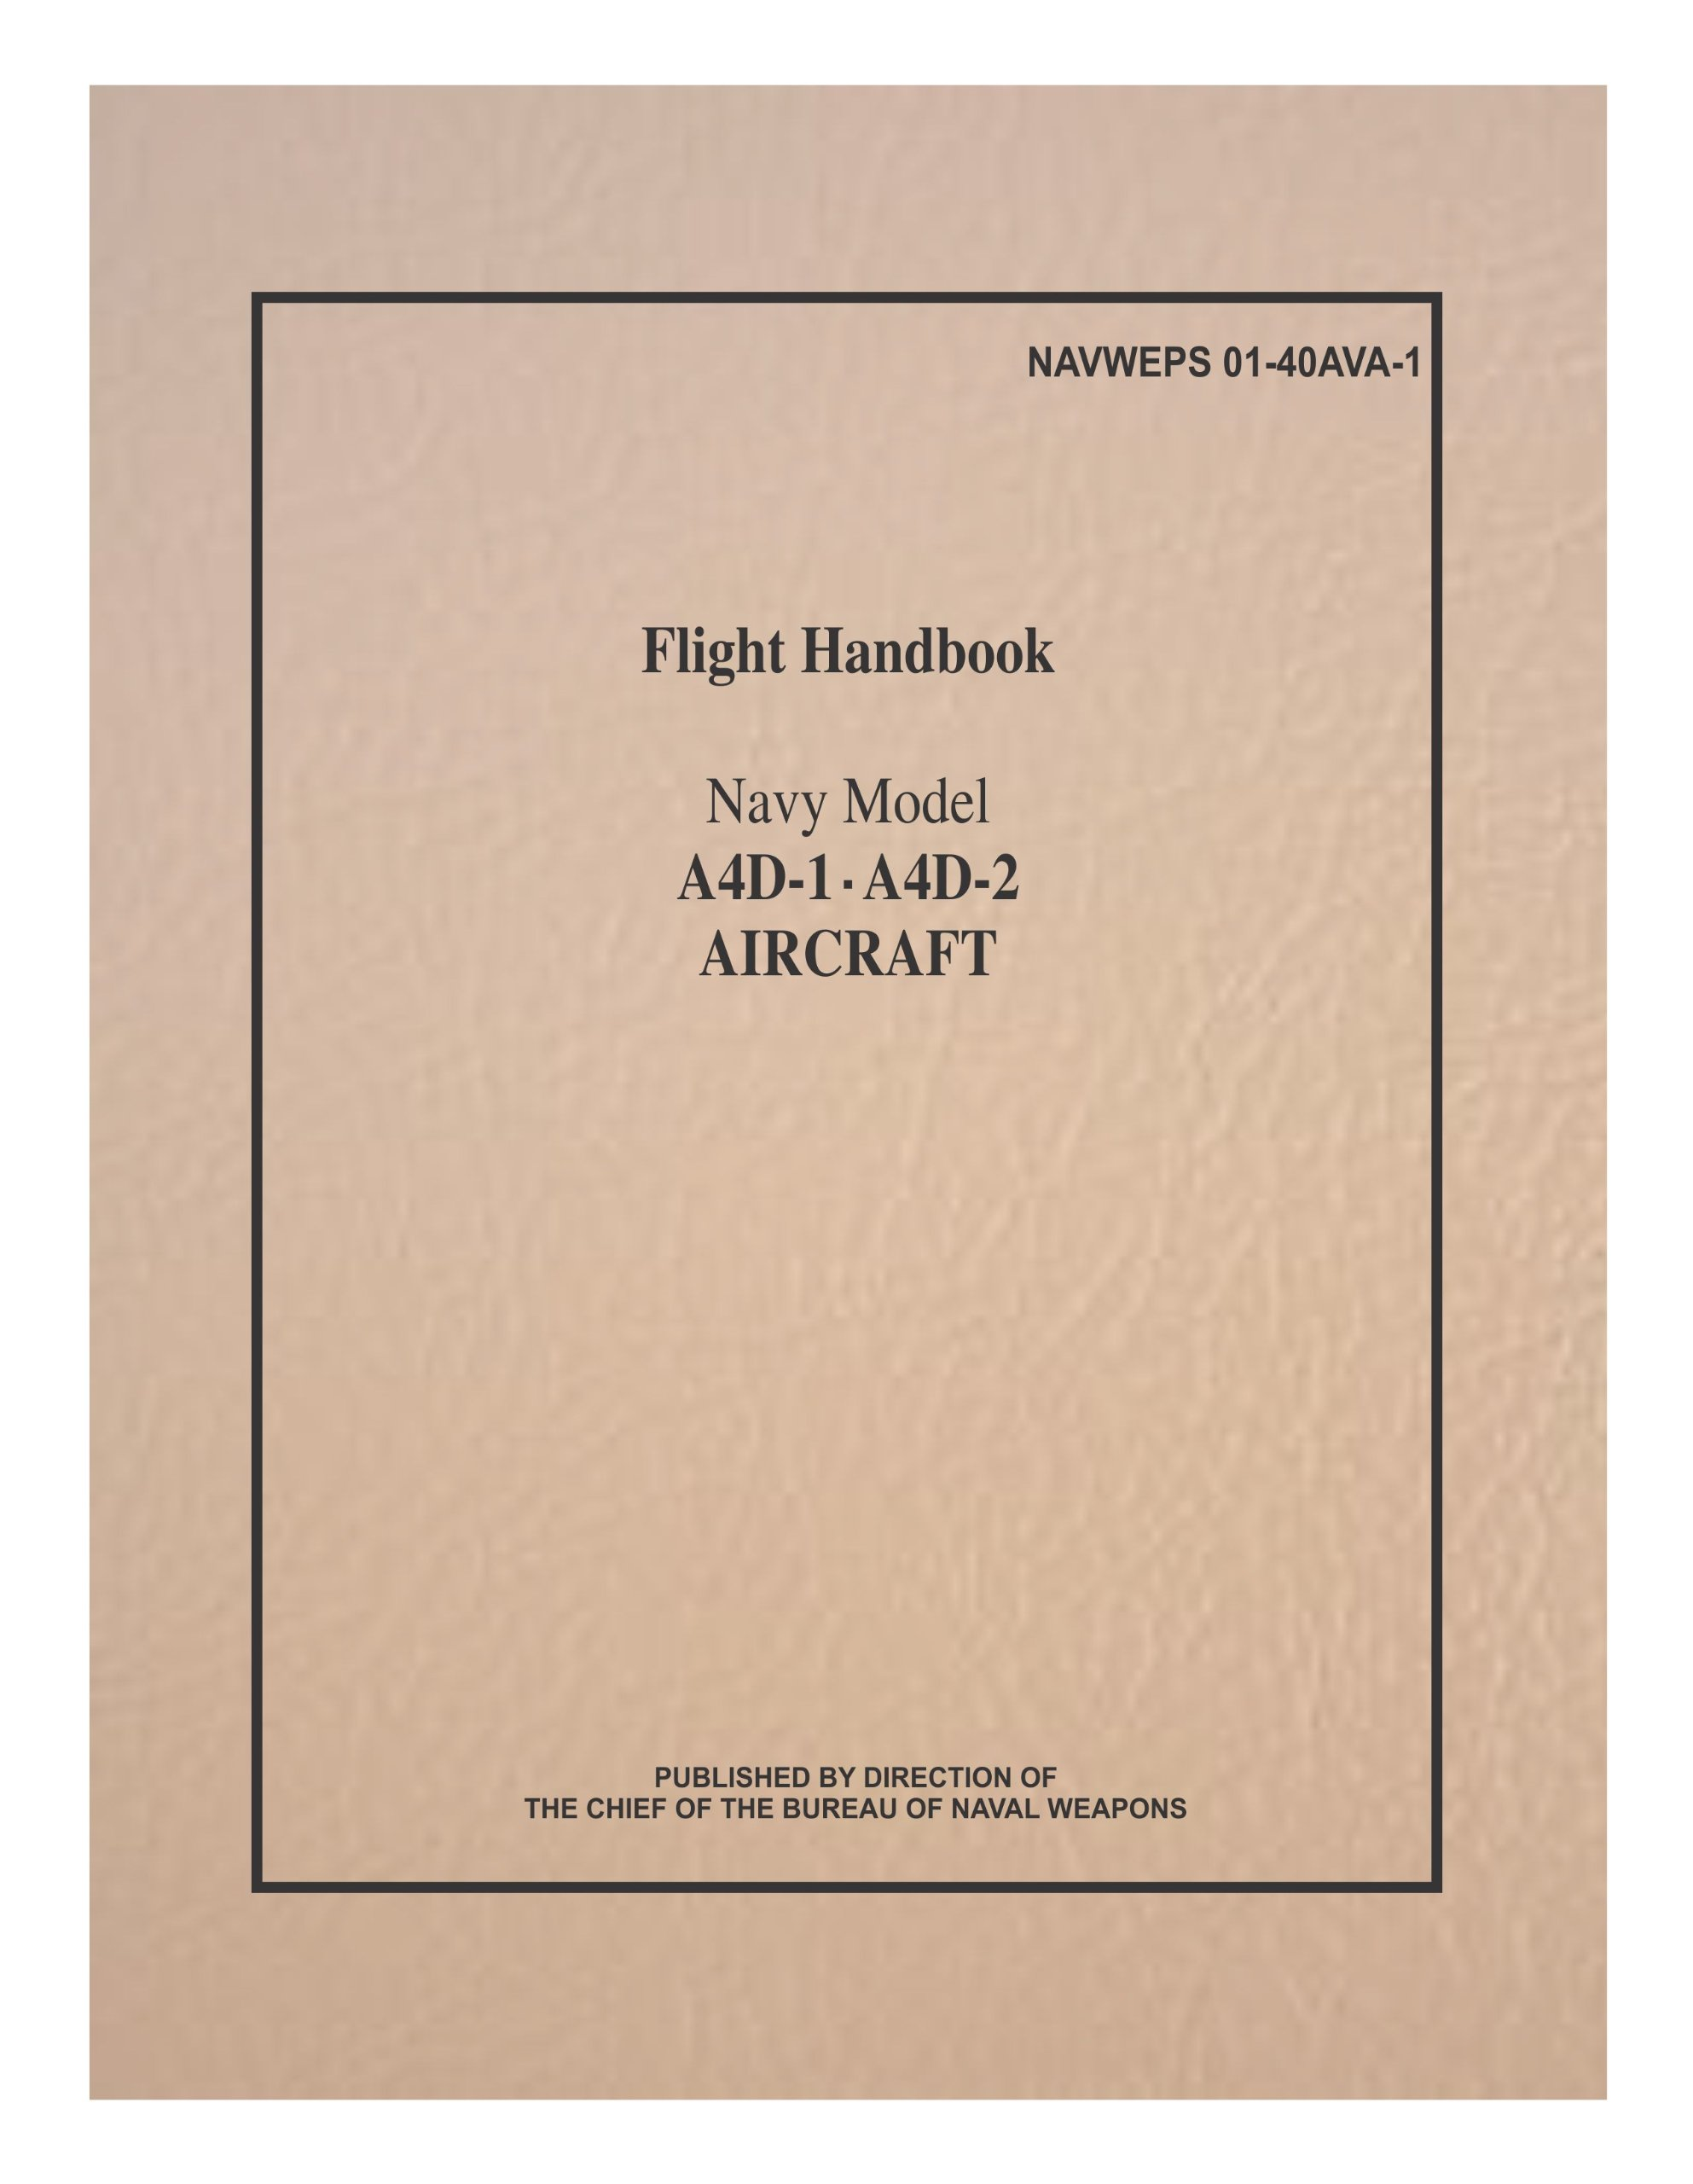 Read Online Navy Model A4D (with A4D-1 and A4D-2) Aircraft NAVWEPS 01-40AVA-1 Flight Handbook 1962 [Student Loose Leaf Facsimile Edition. Re-Imaged from Original for Greater Clarity. Some Color Pages. 2014] ebook